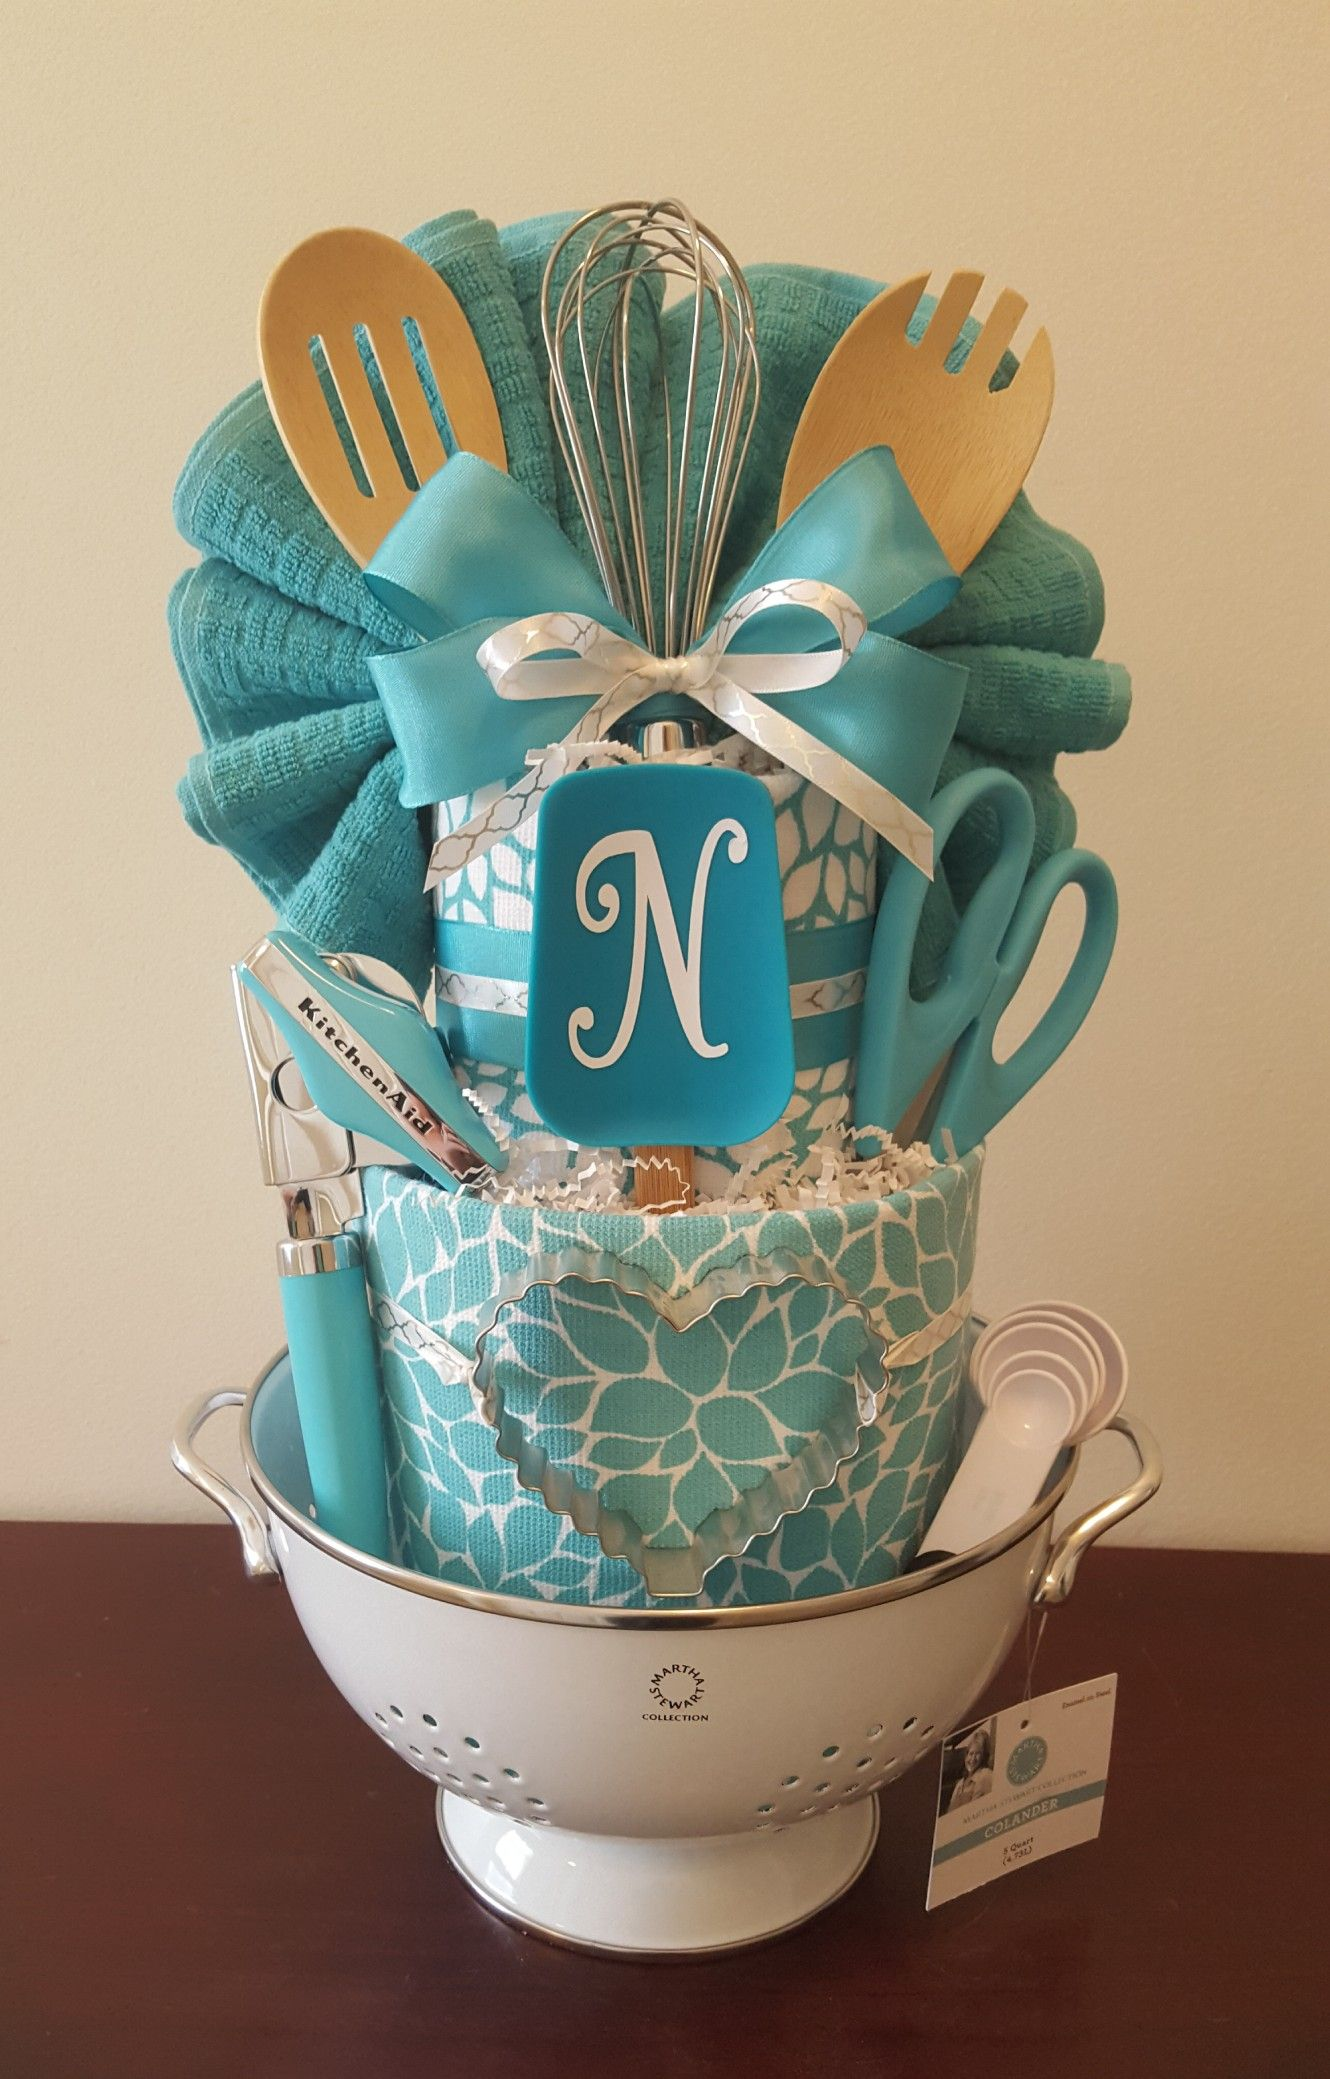 Bridal shower centerpiece gift! Kitchen towel cake. Loaded with ...